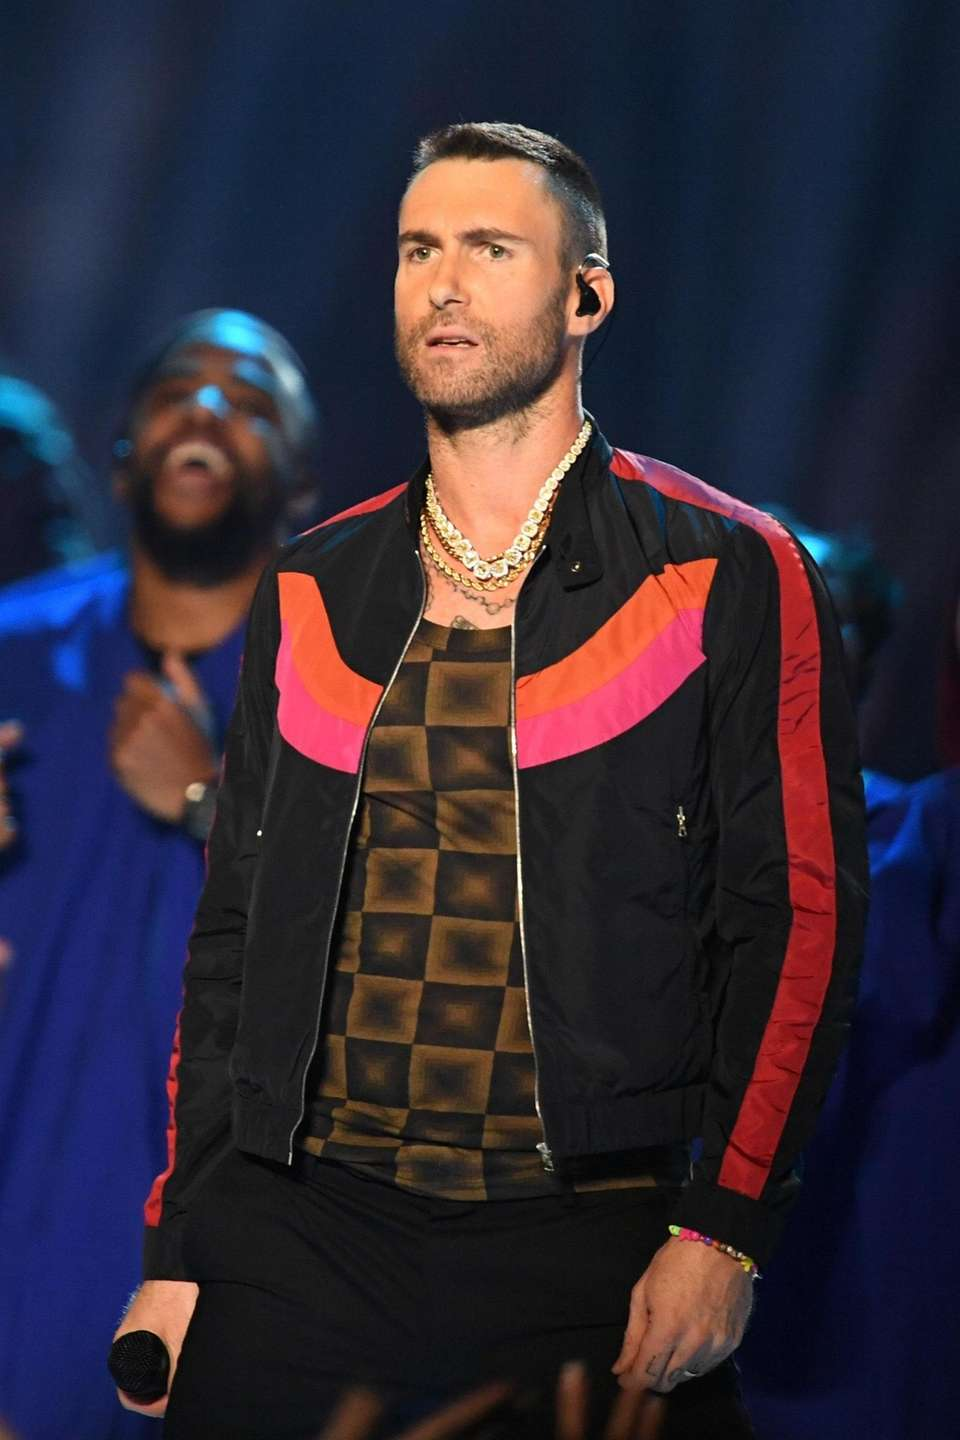 ATLANTA, GA - FEBRUARY 03: Adam Levine of